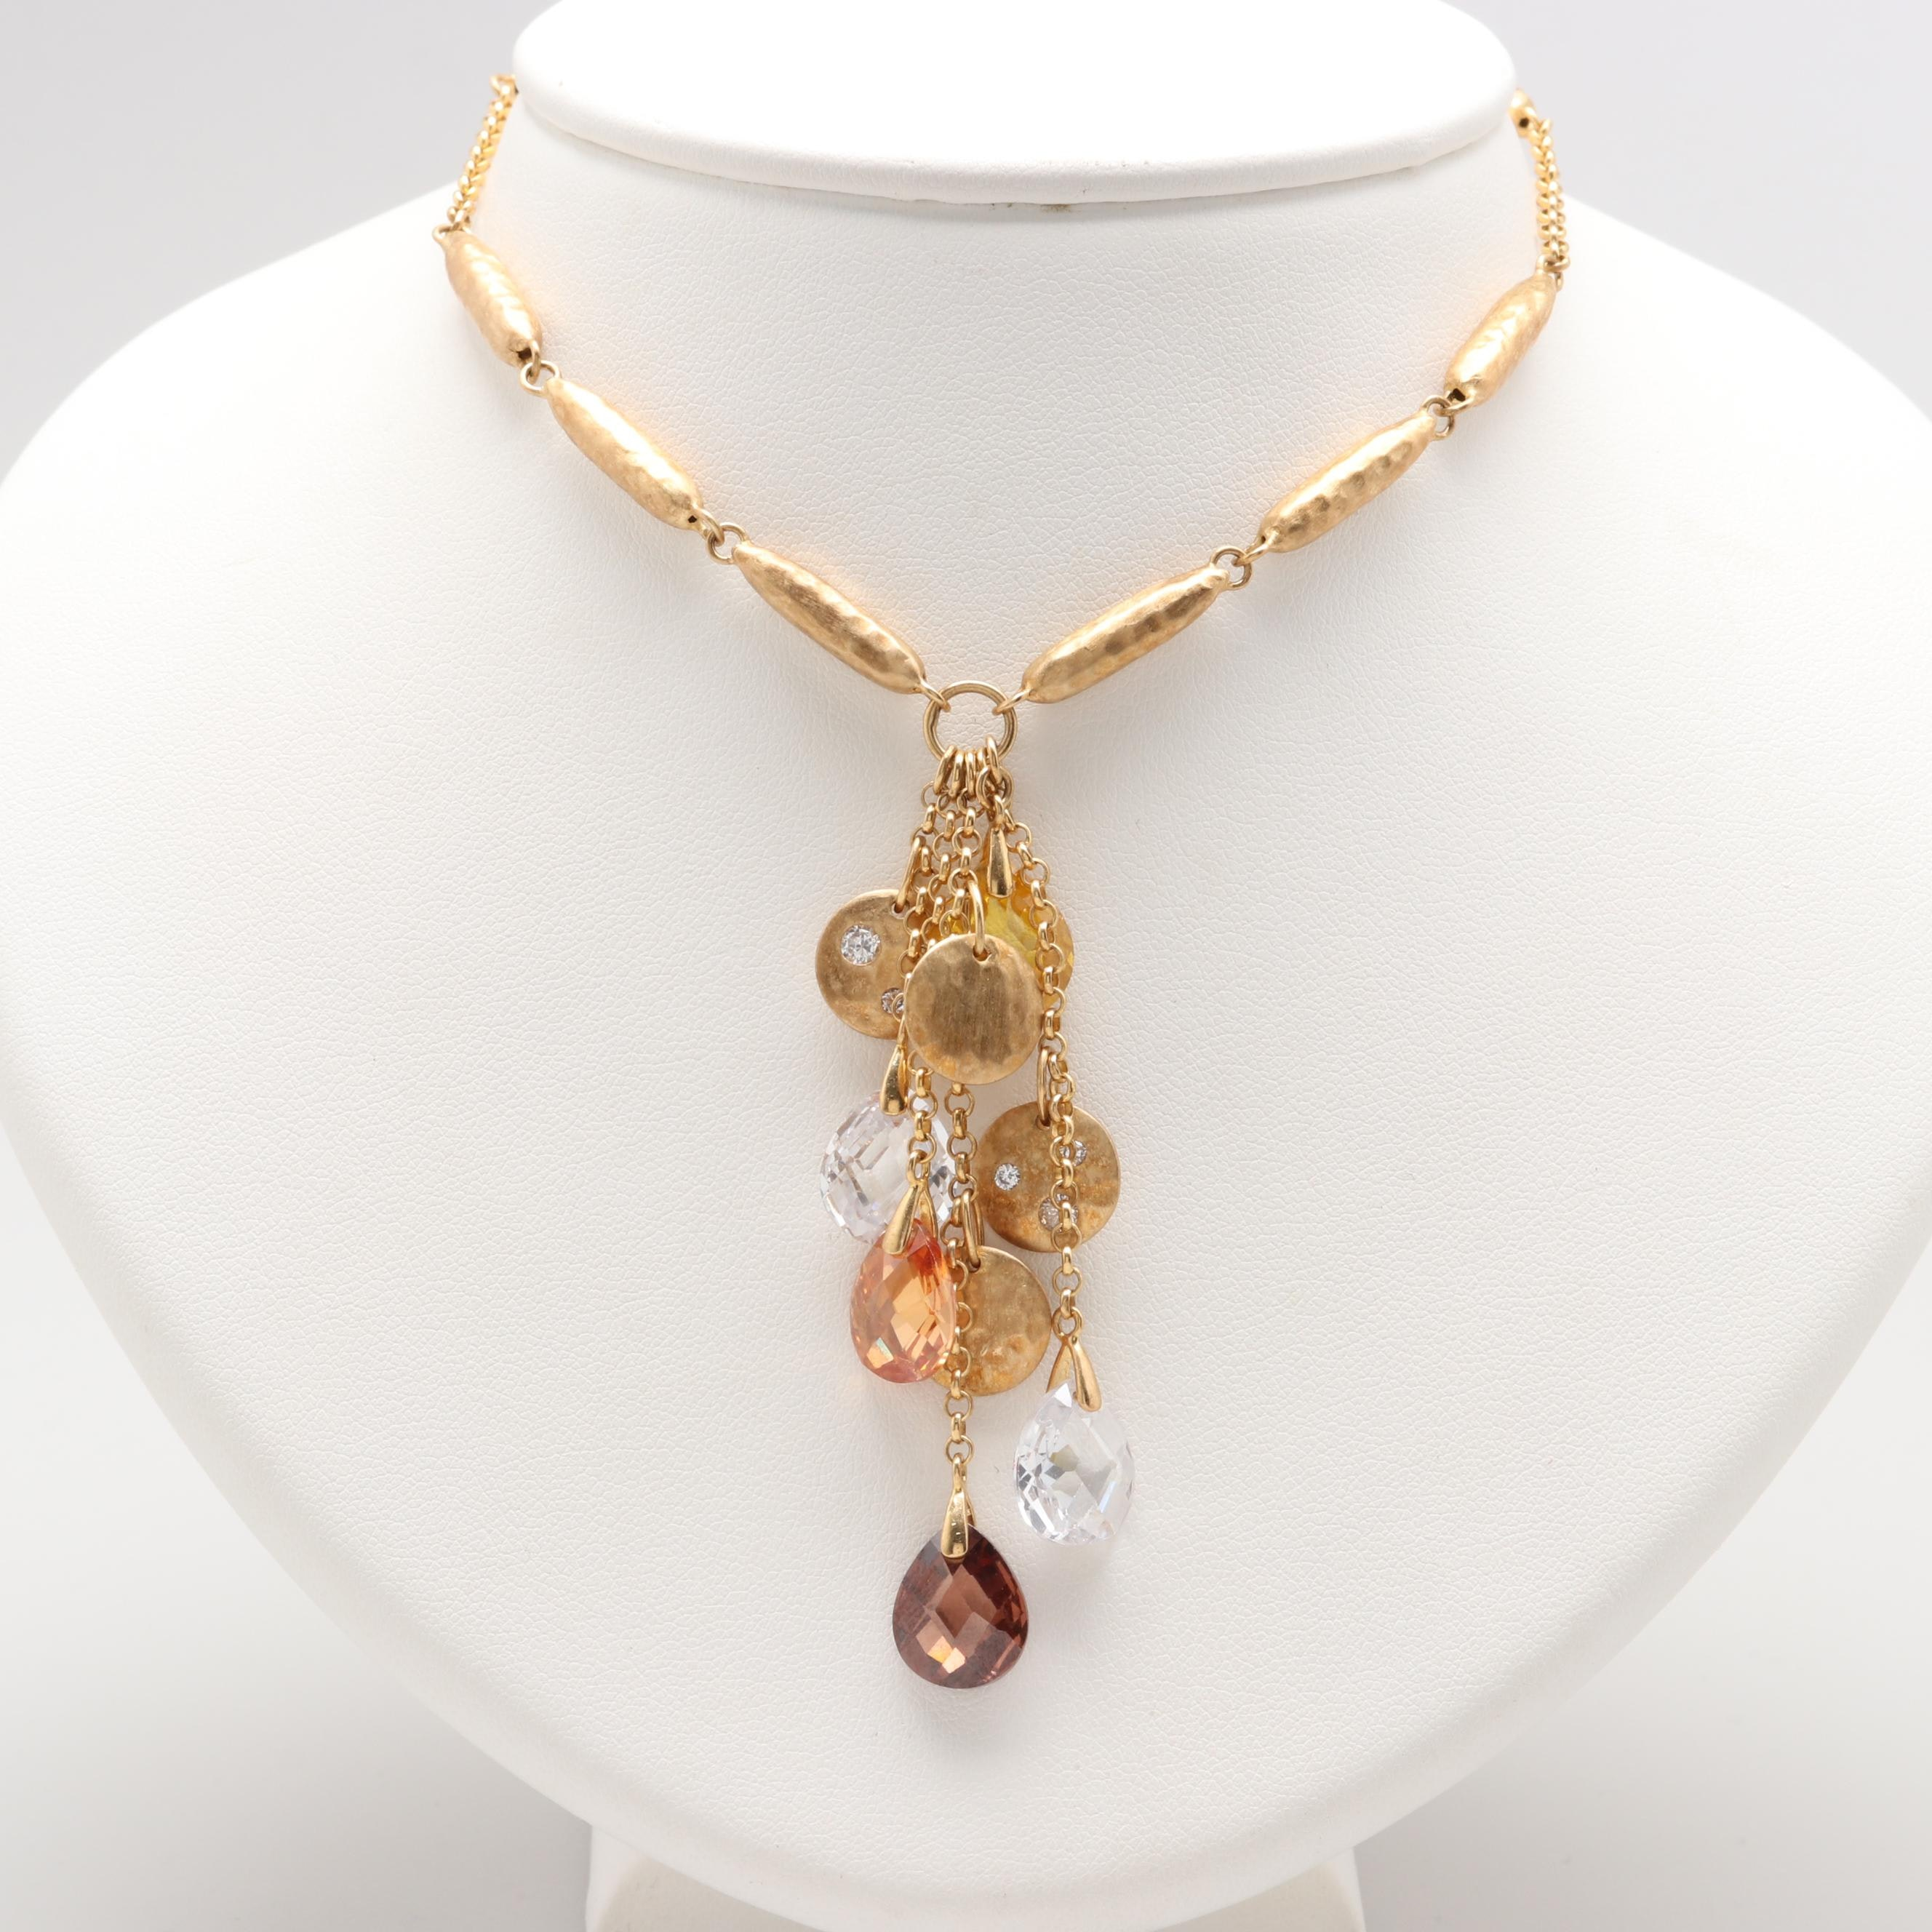 Gold Tone Sterling Silver Cubic Zirconia and Glass Necklace